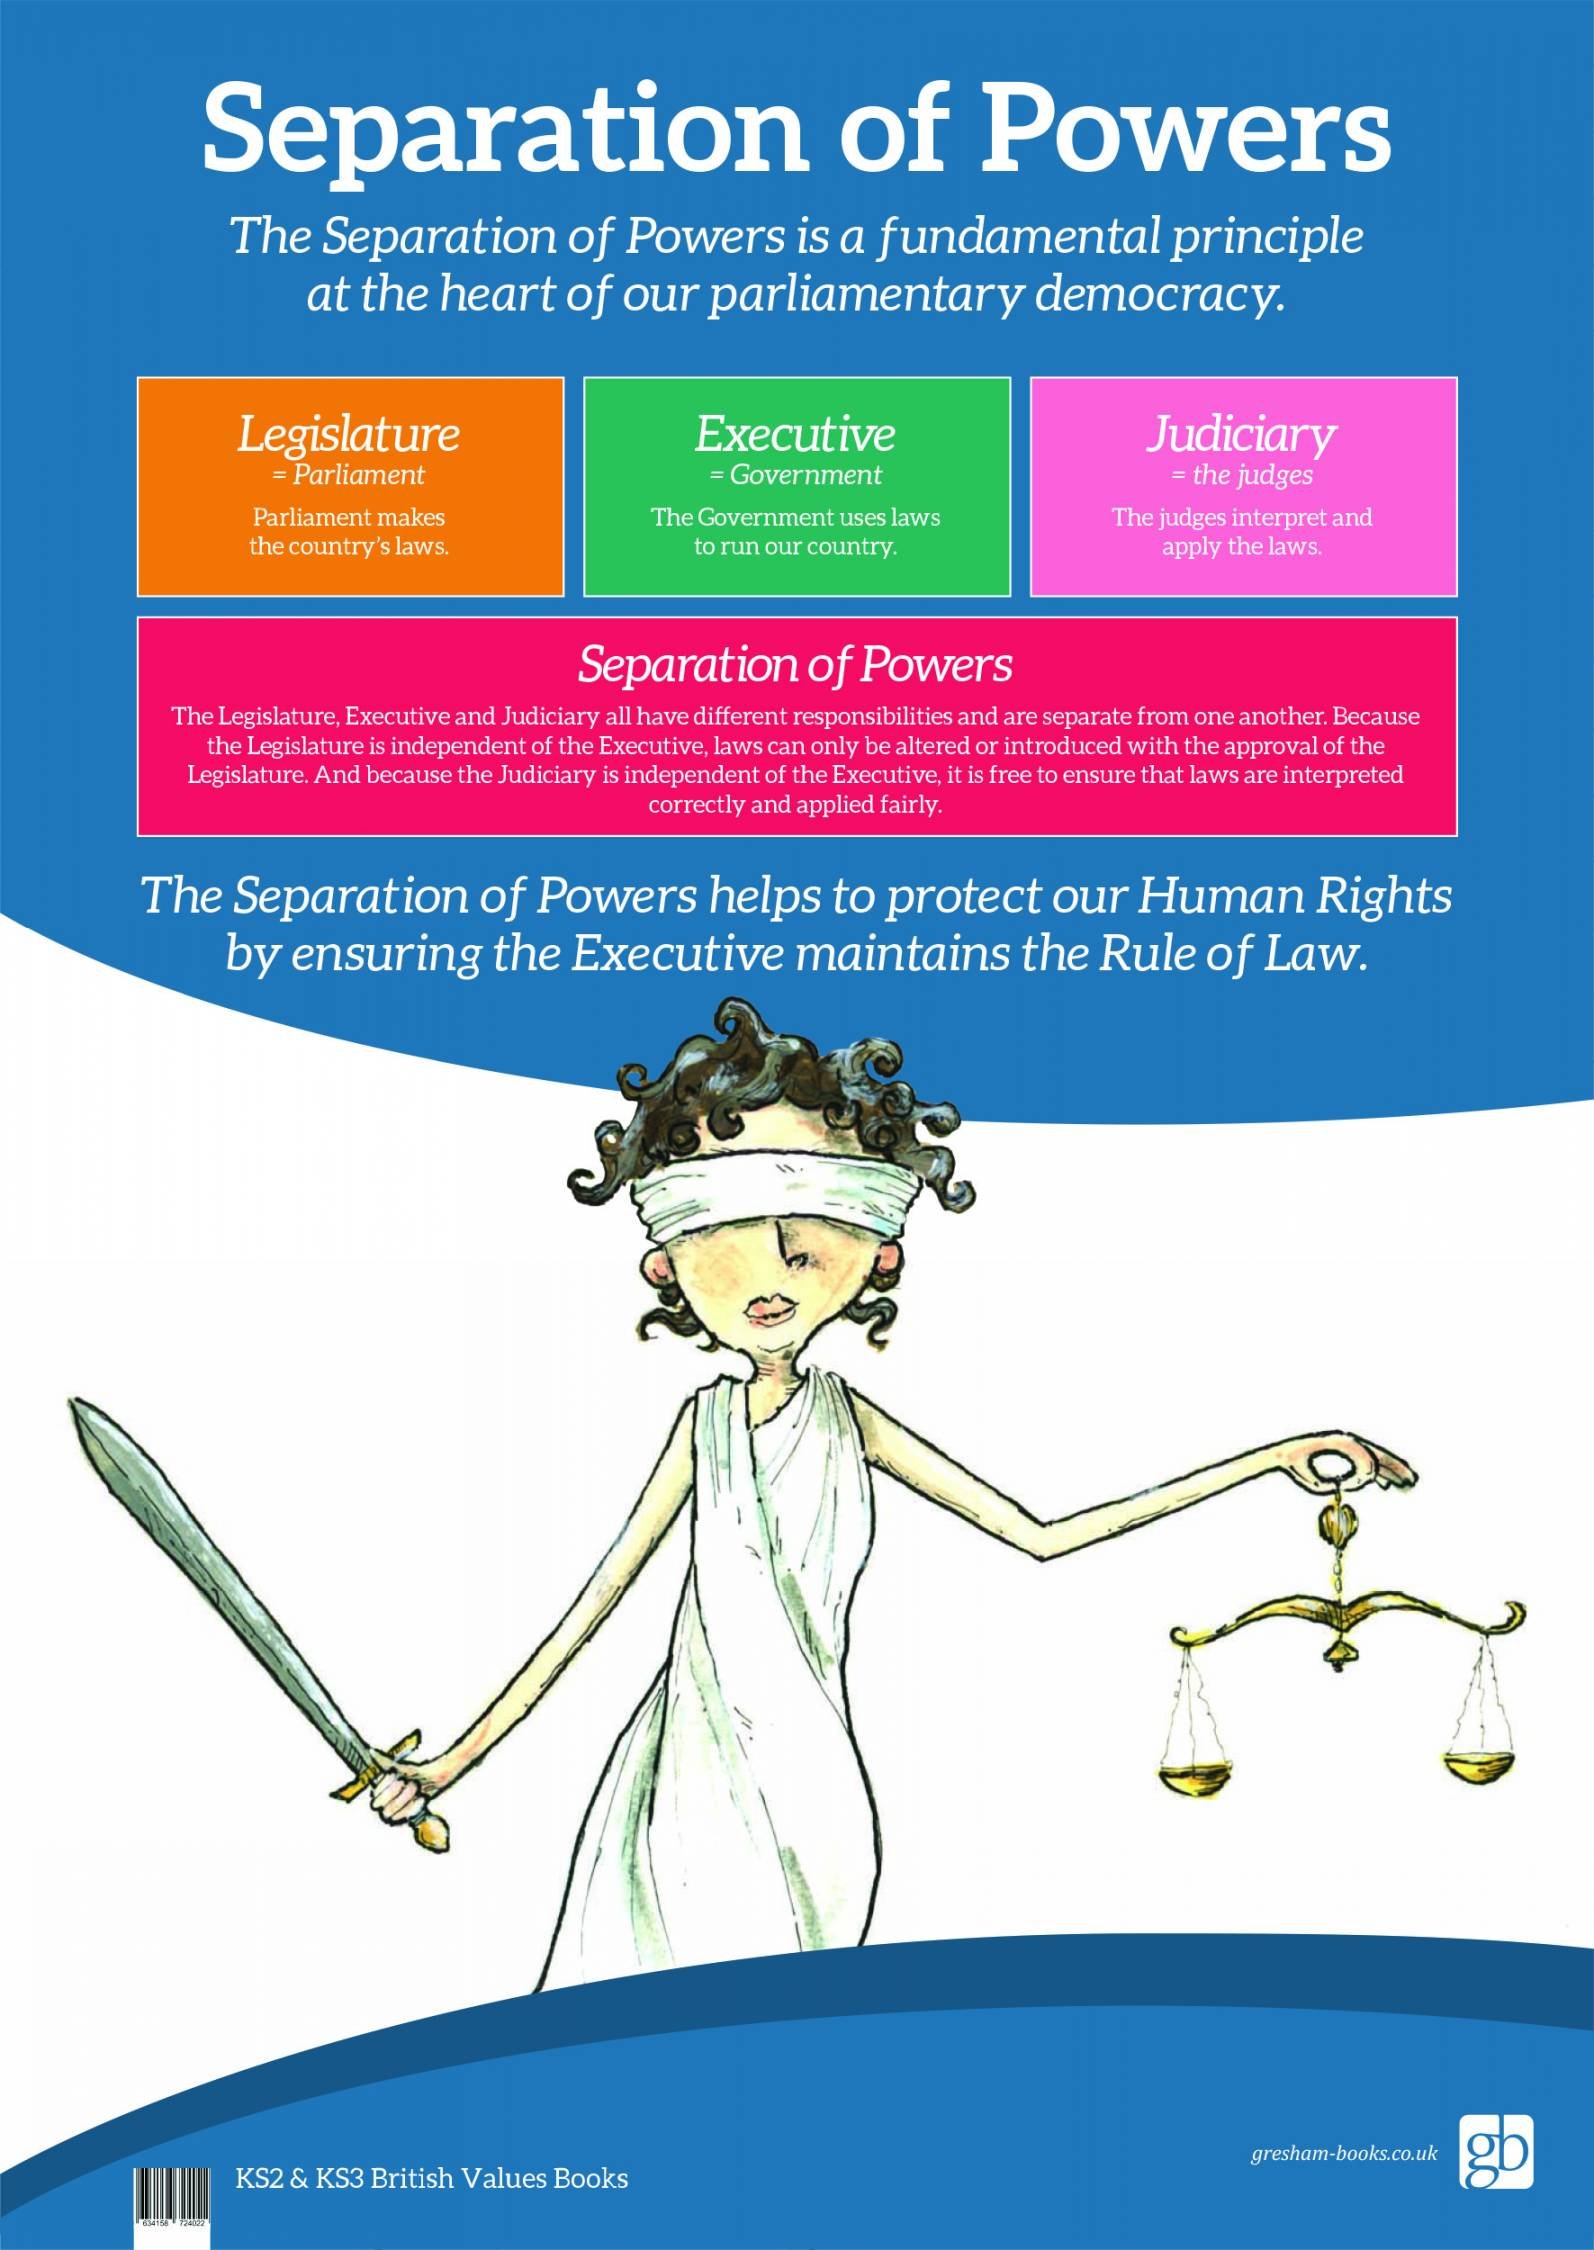 A1 Size British Values Poster - Separation of Powers